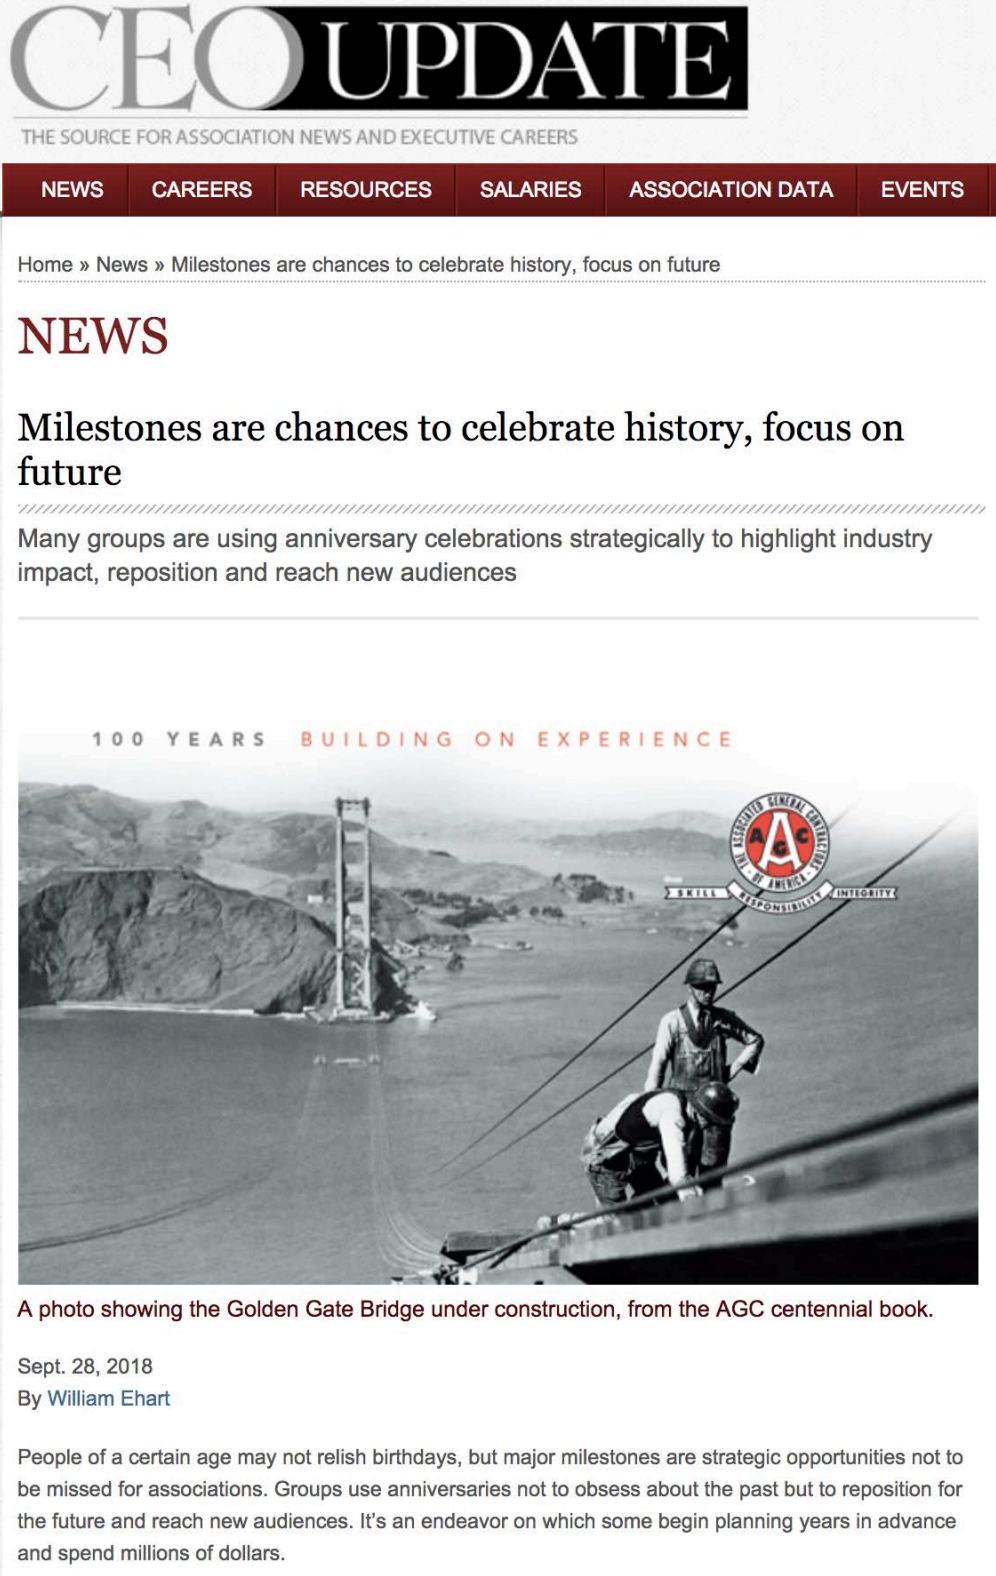 Milestones are chances to celebrate history, focus on future